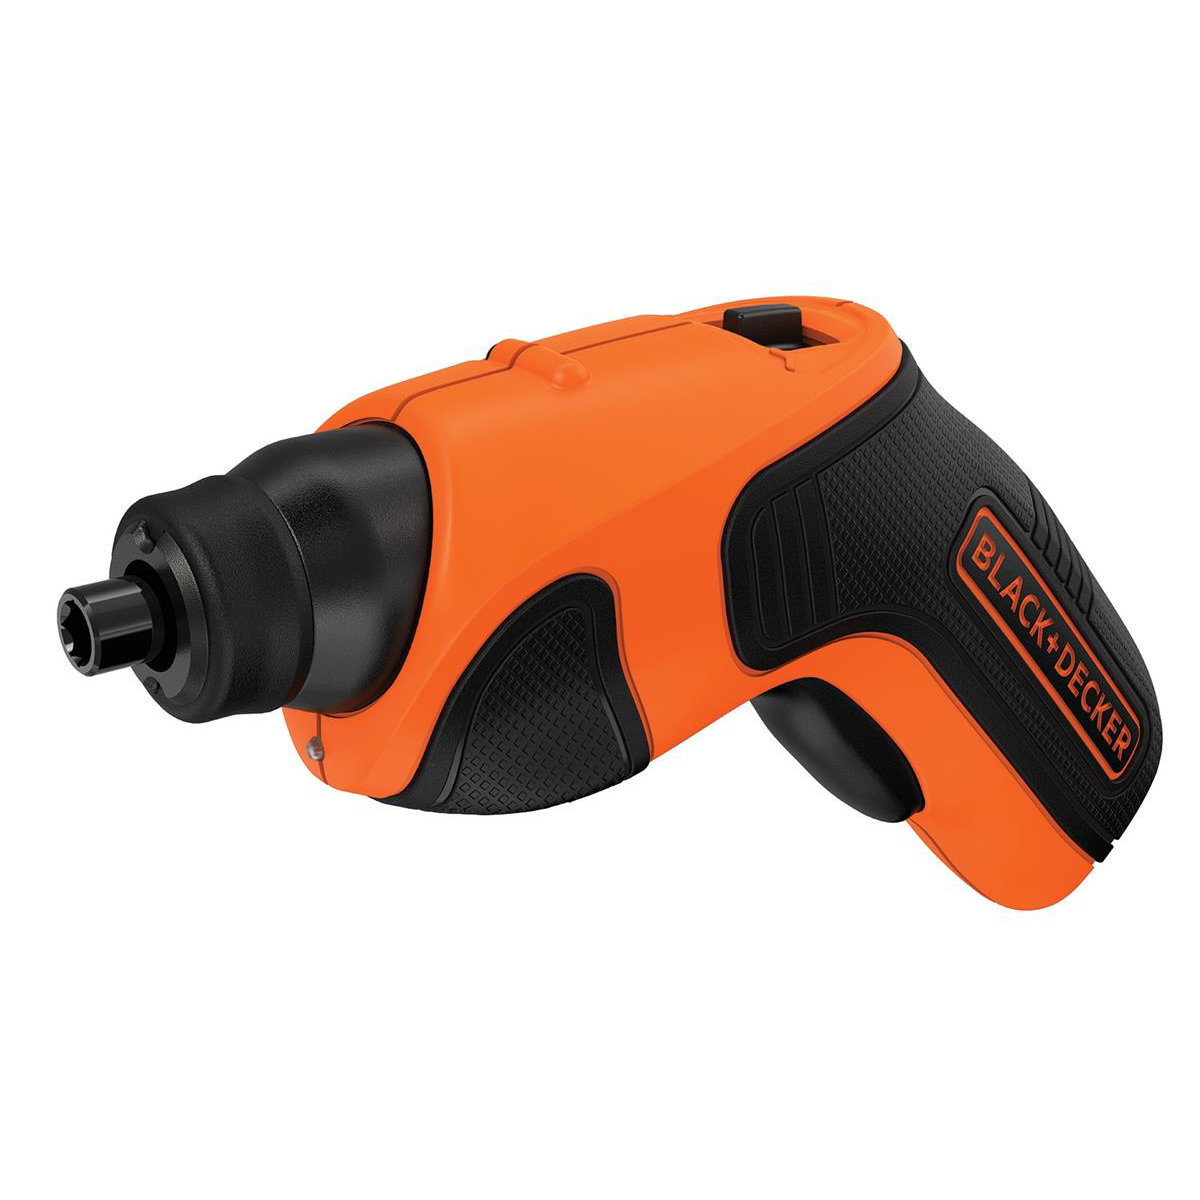 Image for Black & Decker 3.6v Lithium Ion Cordless Screwdriver Ref CS3651LC-GB